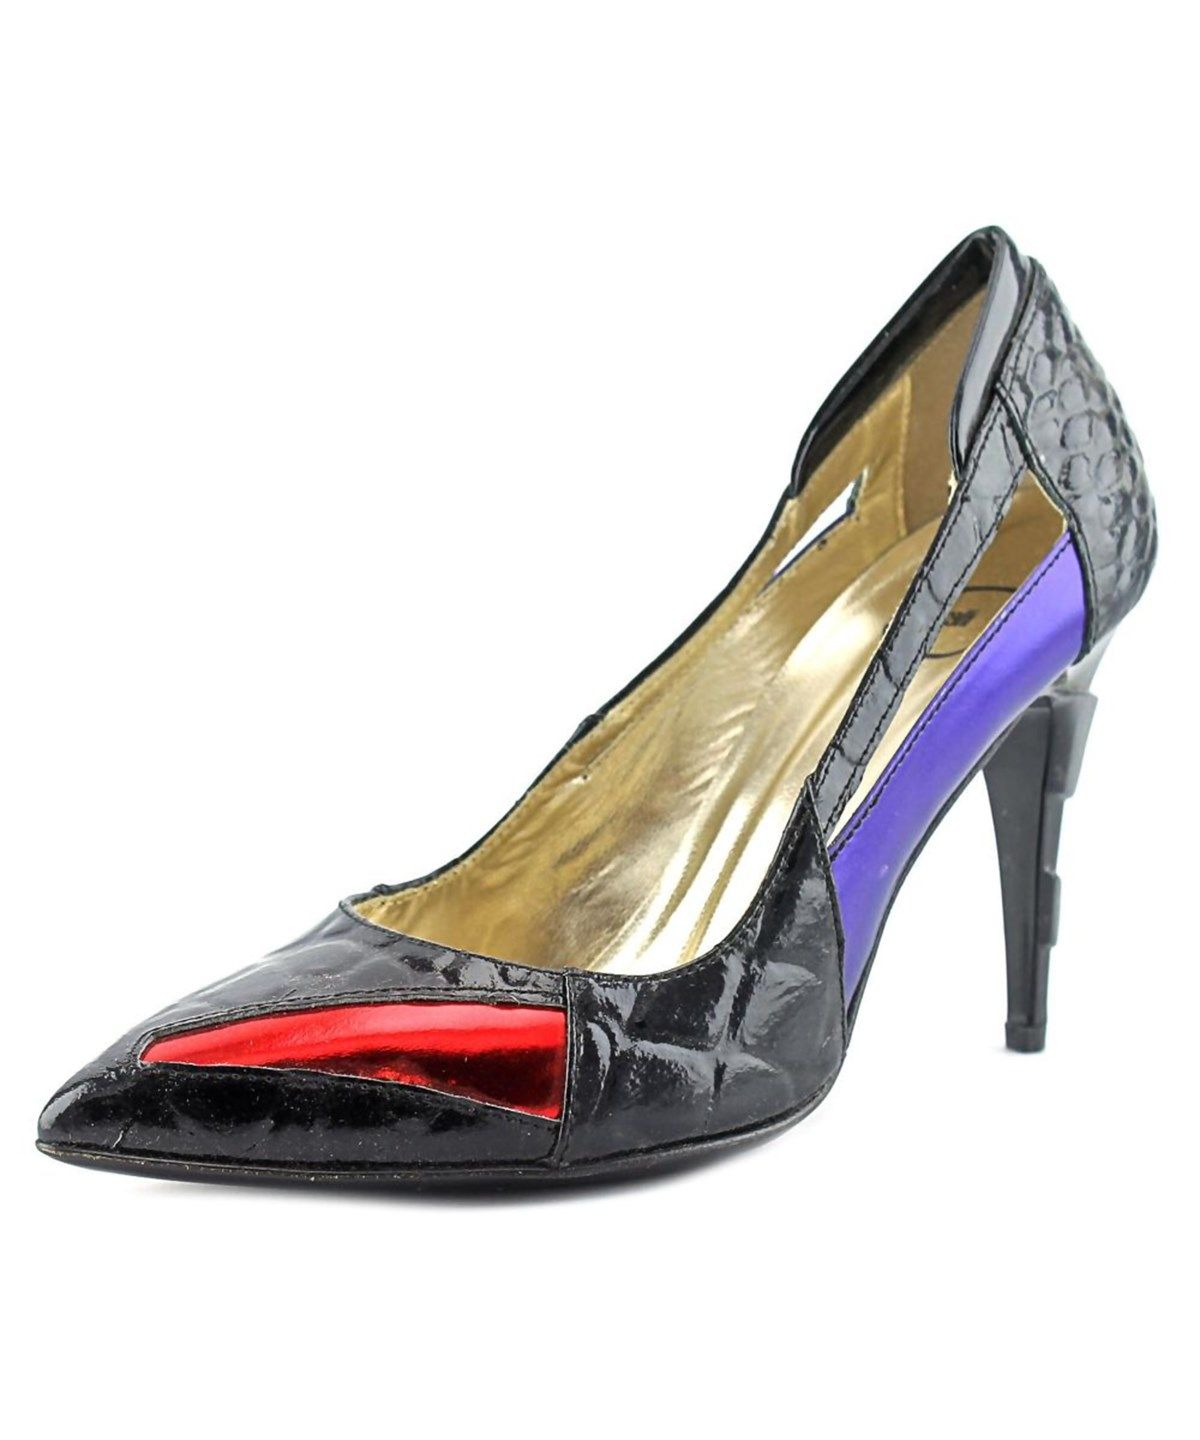 Womens Alluring Glossy Patent Red Peep Toe Pumps Shoes with 5.25 Inch Heels